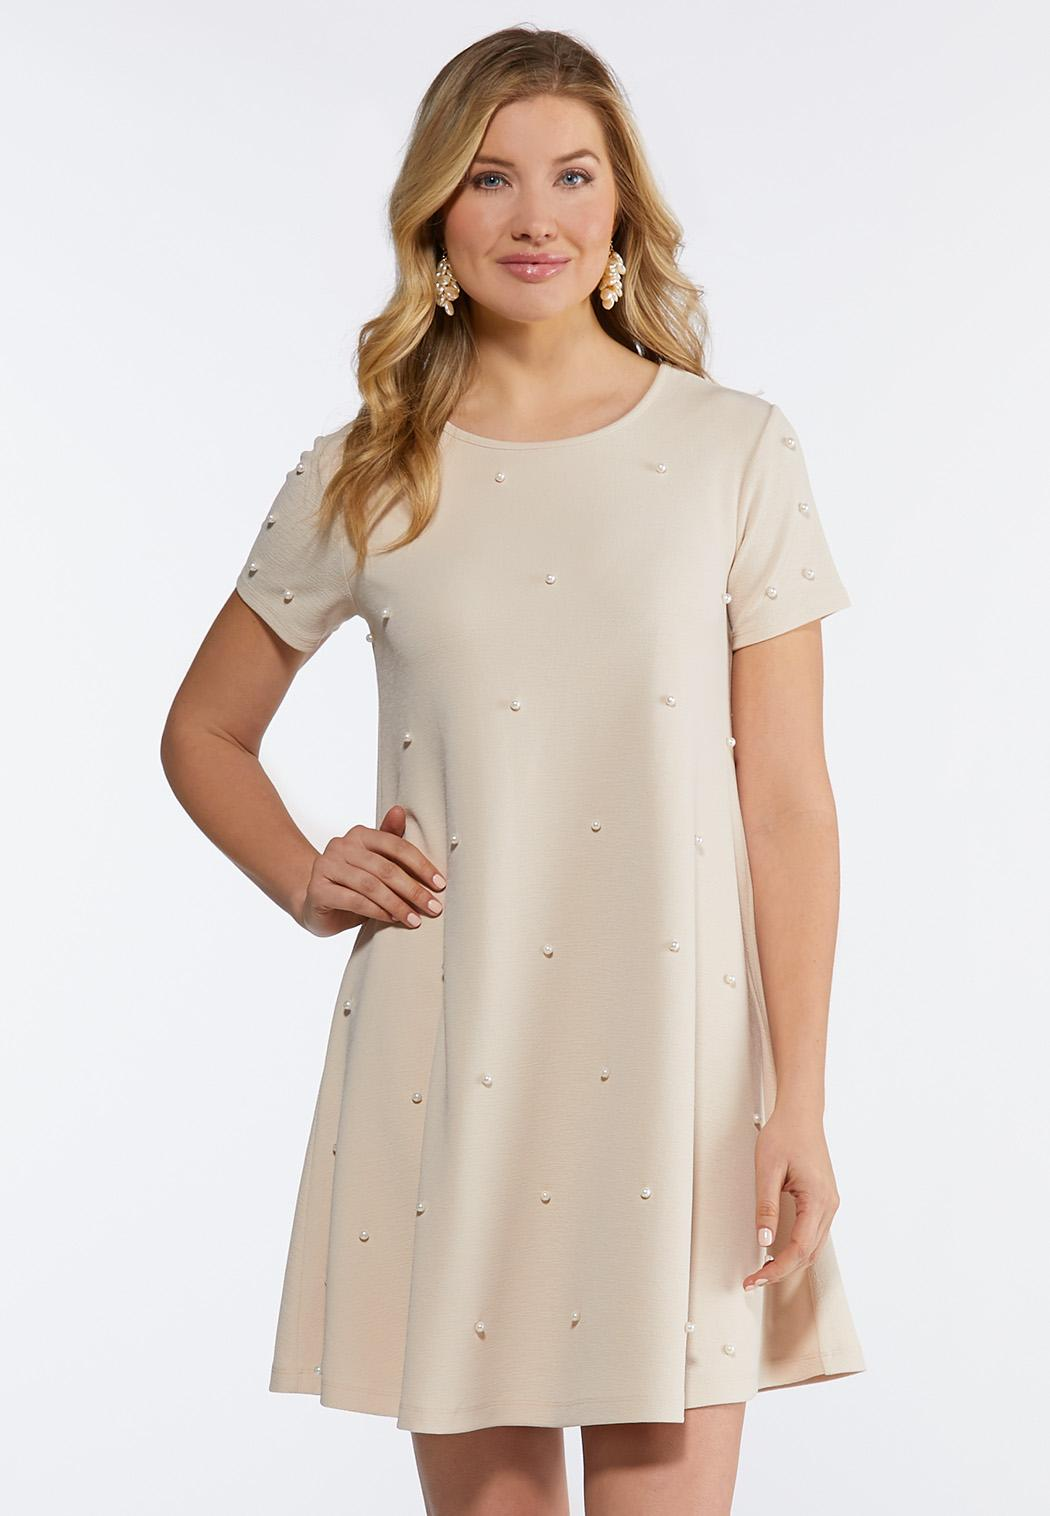 Plus Size Scattered Pearl Swing Dress A-line & Swing Cato Fashions